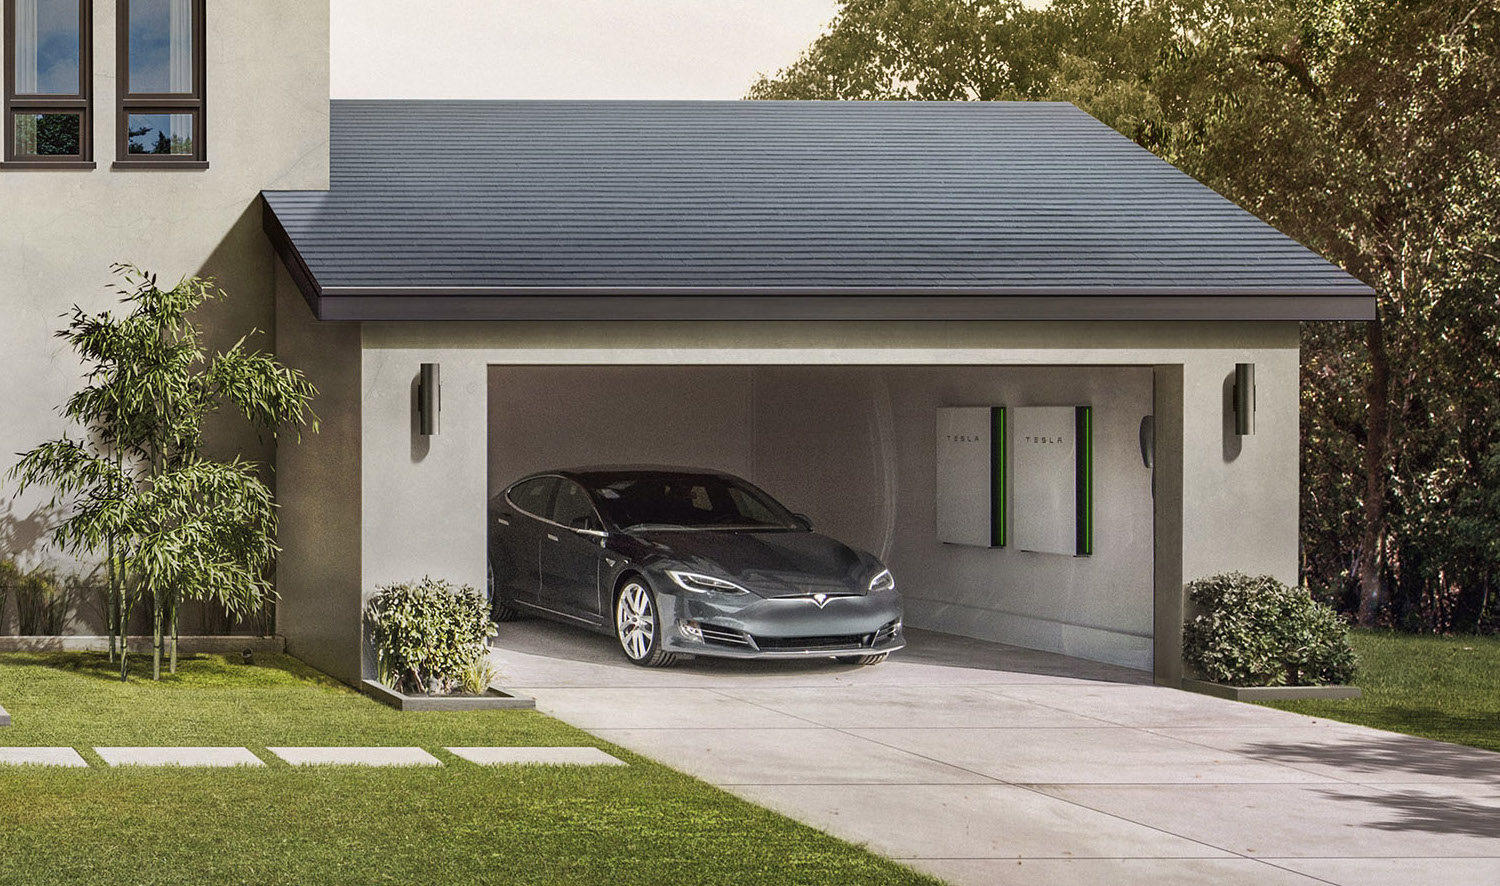 Tesla S Entry Into Solar Could Be Challenged By Lobbying